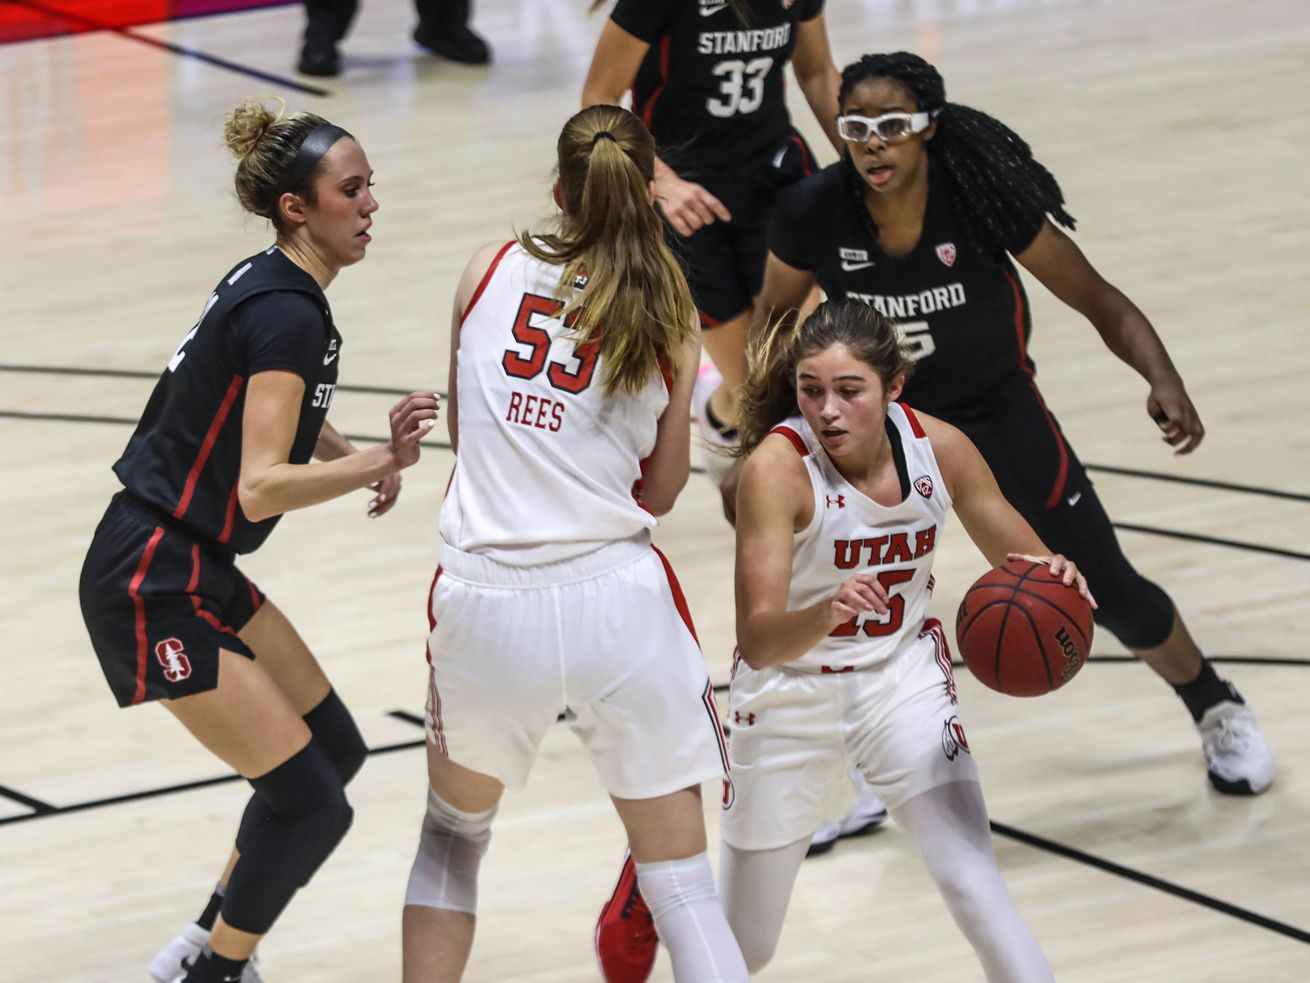 Utah women's basketball: Kiana Williams scores 18 as Utes fall to No. 1 Stanford